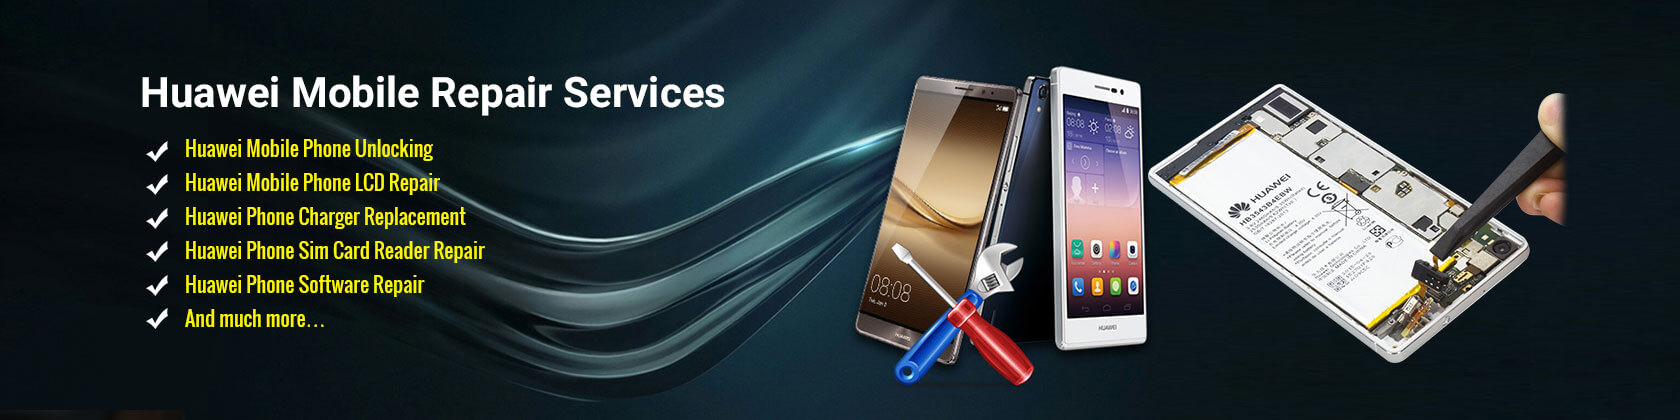 Huawei-Mobile-Phone-Repair-banner